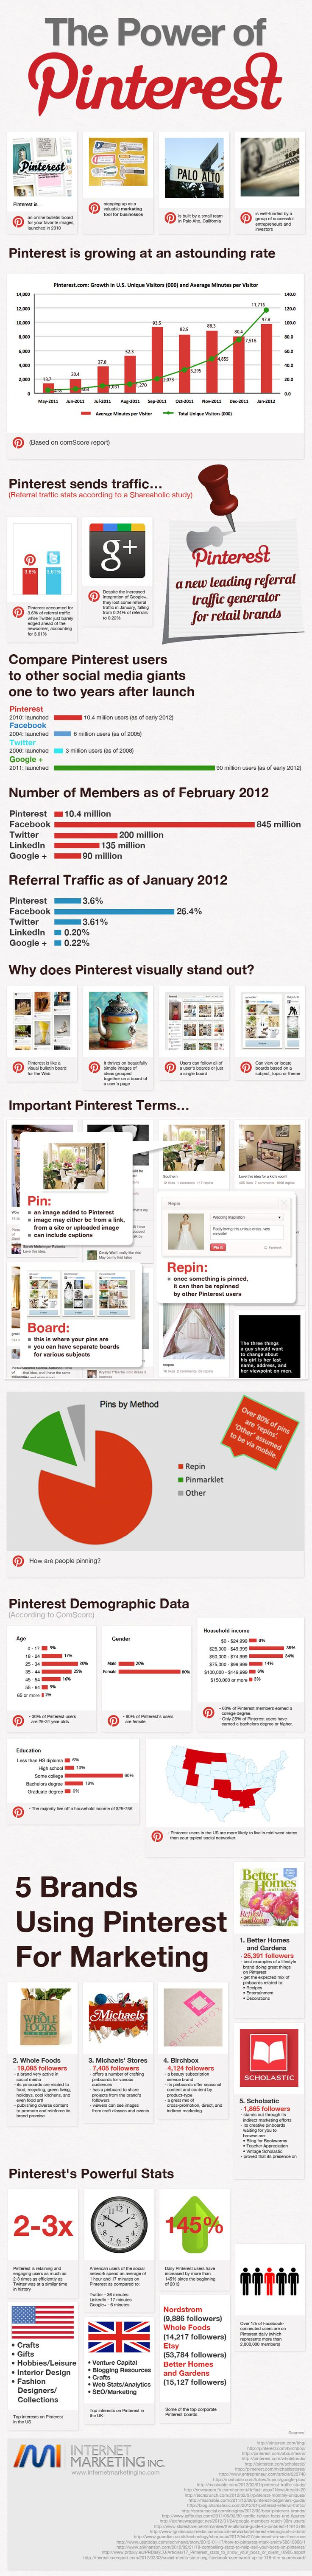 The Power of Pinterest for your business.